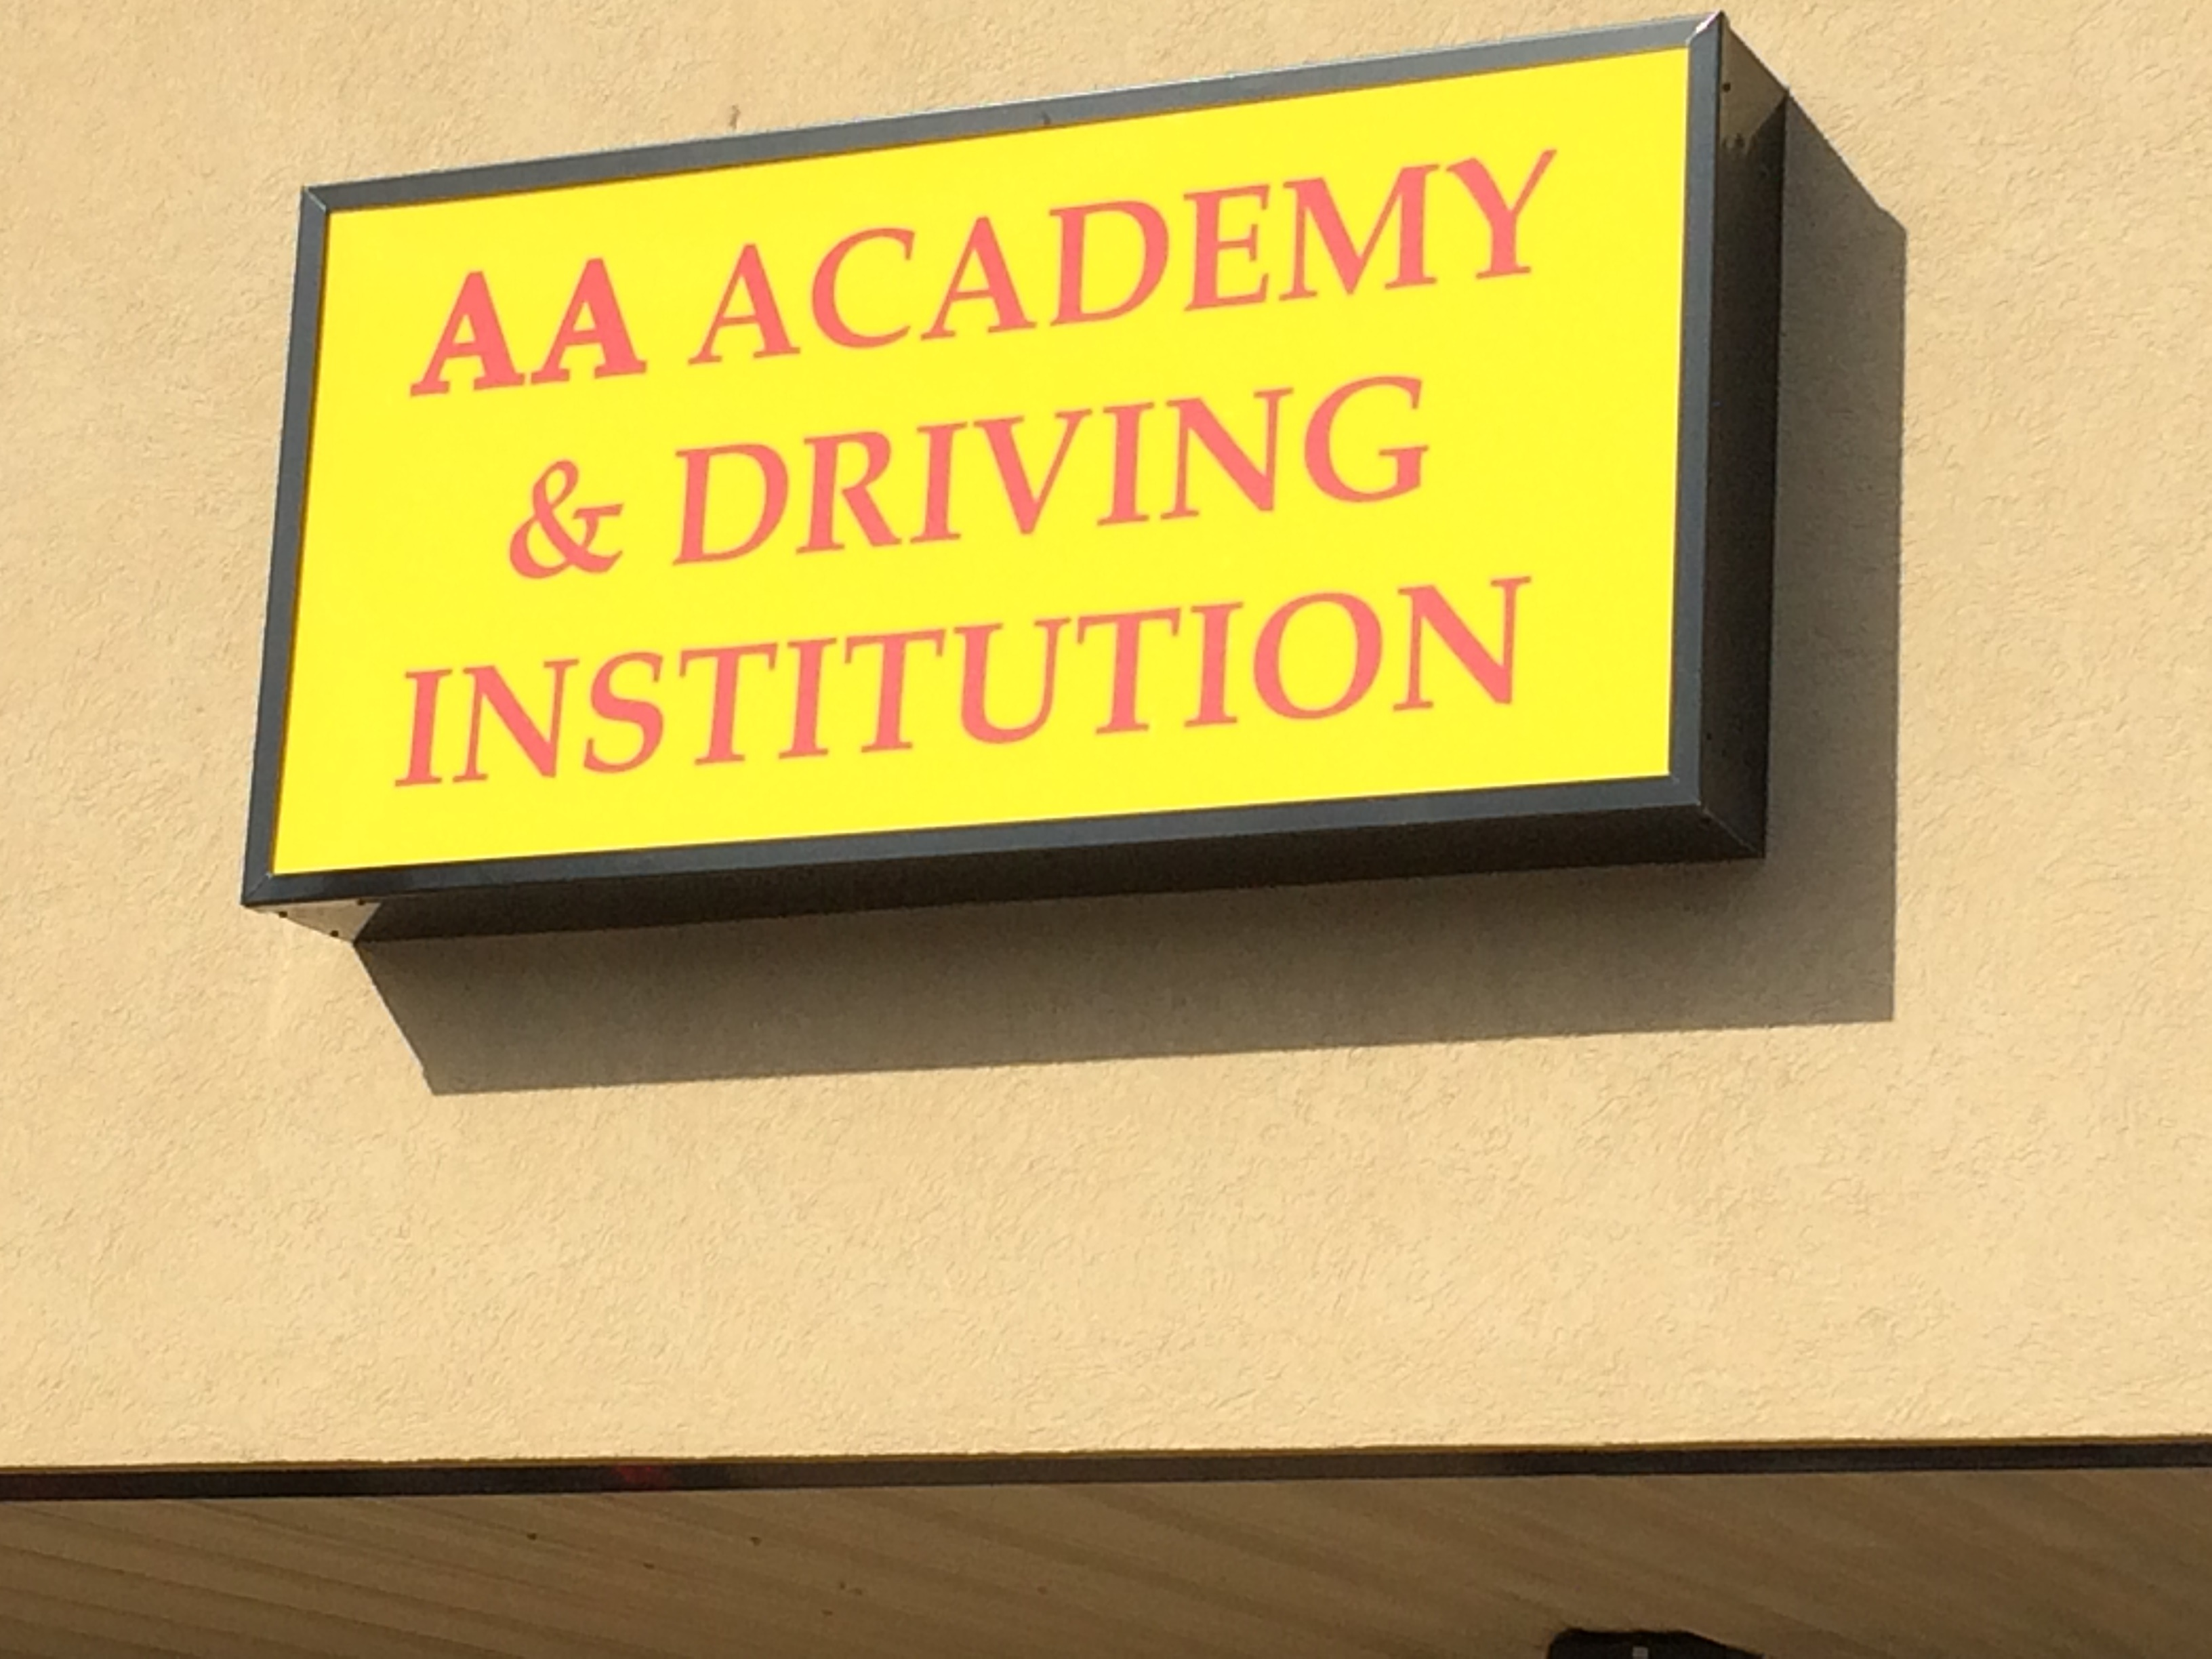 AA Academy & Driving Institution Inc 4317 Airline Hwy ...